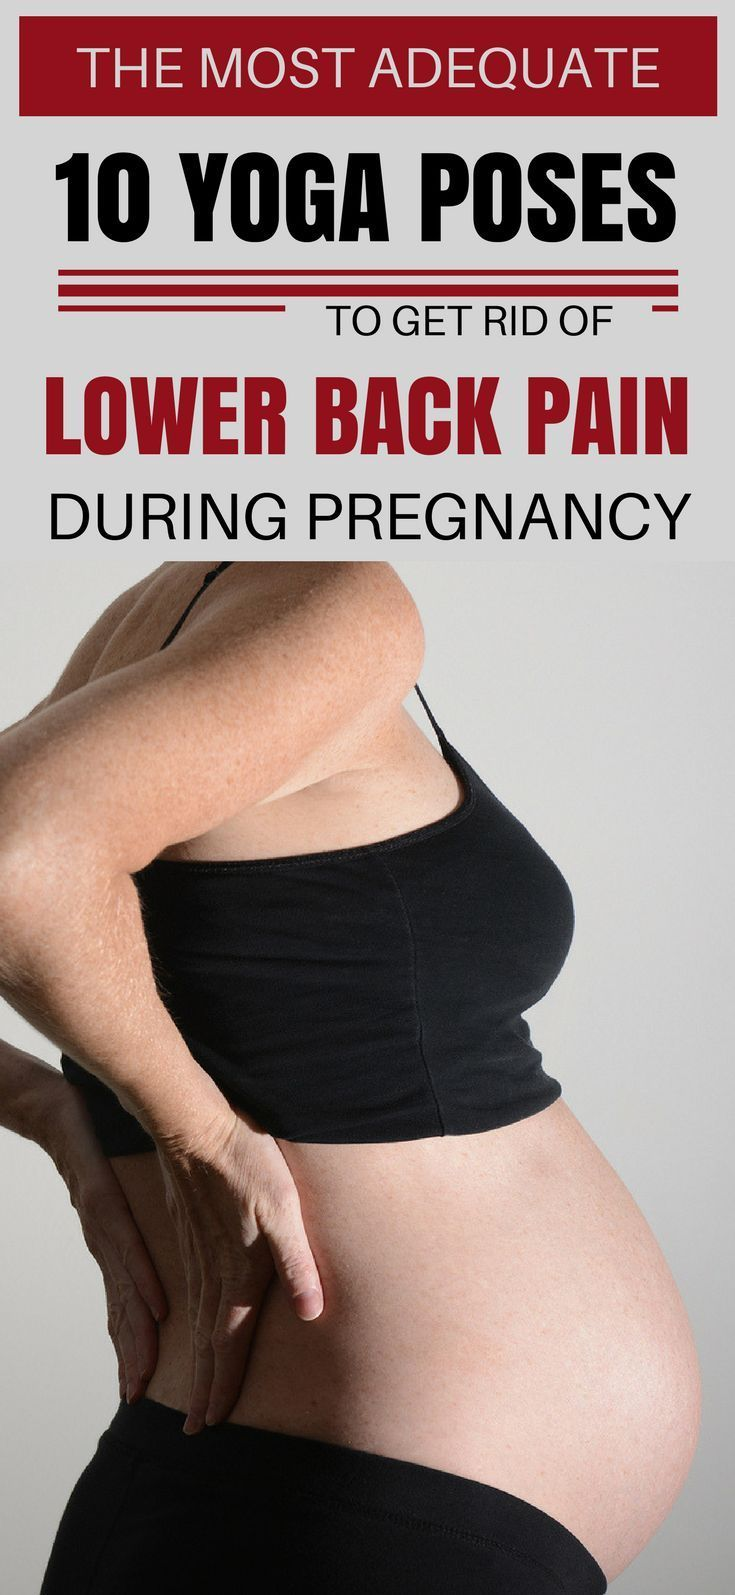 How To Get Rid Of Back Pain After Pregnancy